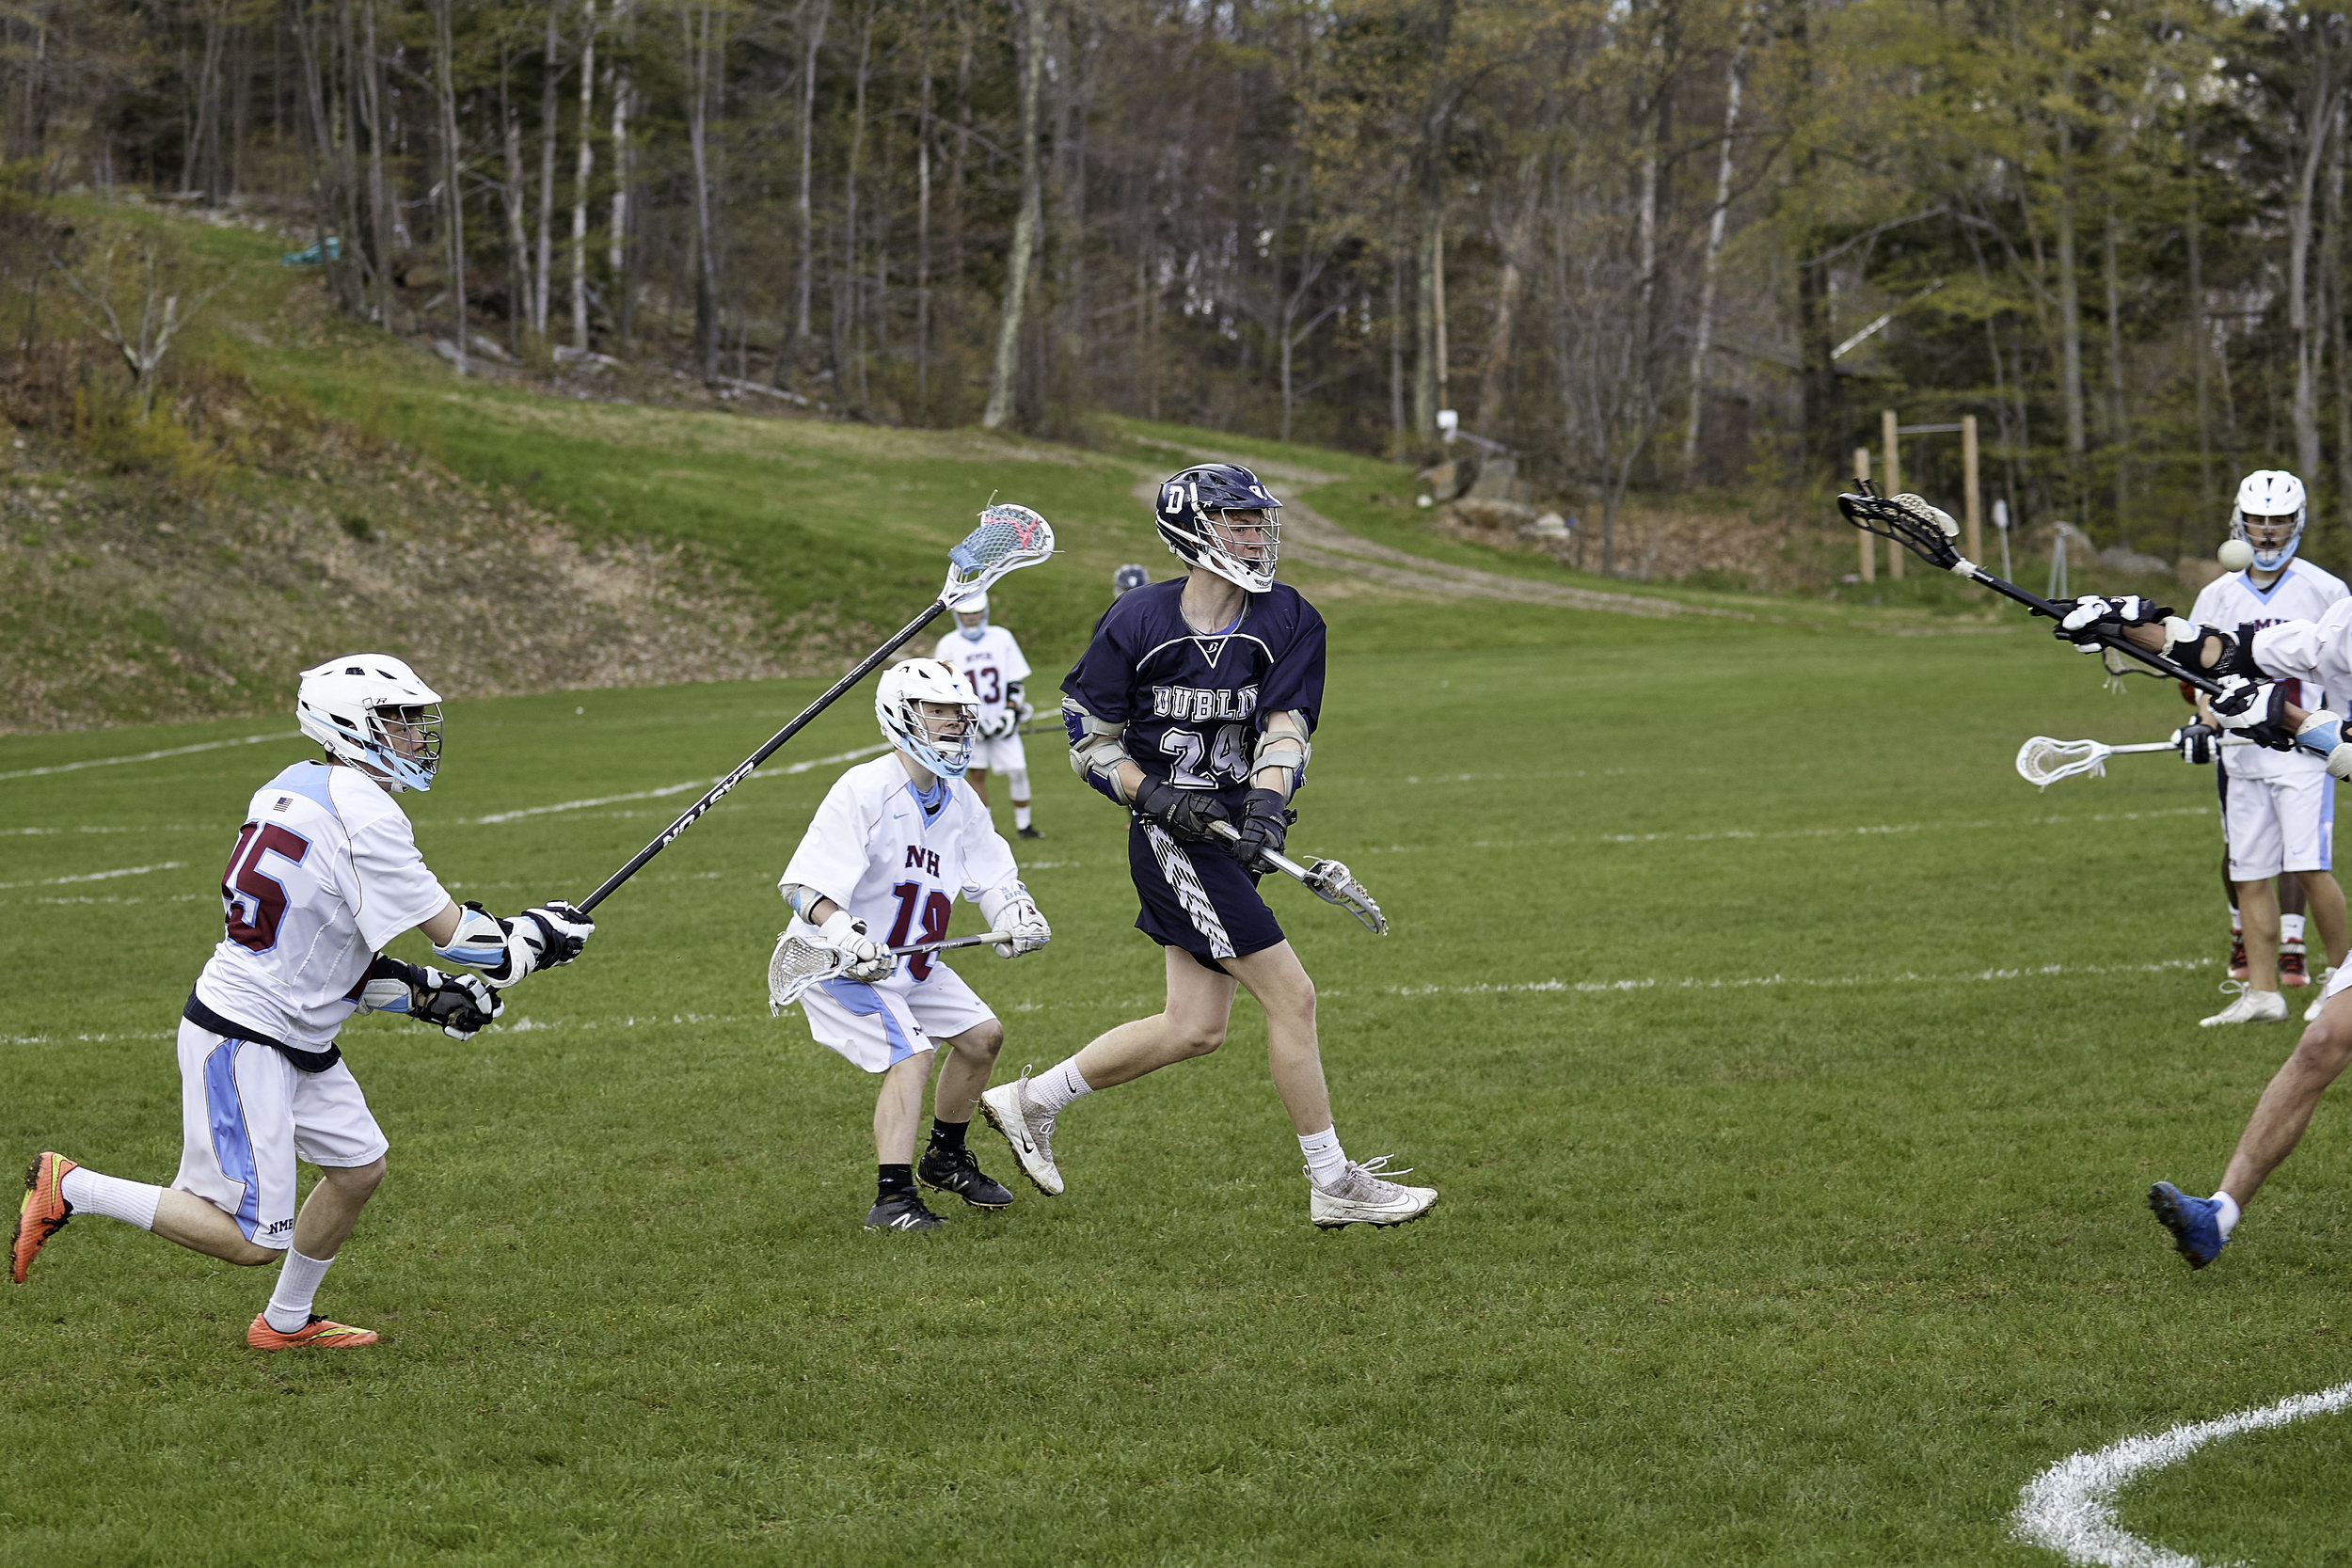 Boys Lax vs Northfield Mount Hermon JV - May 15 2019 - 0043.jpg